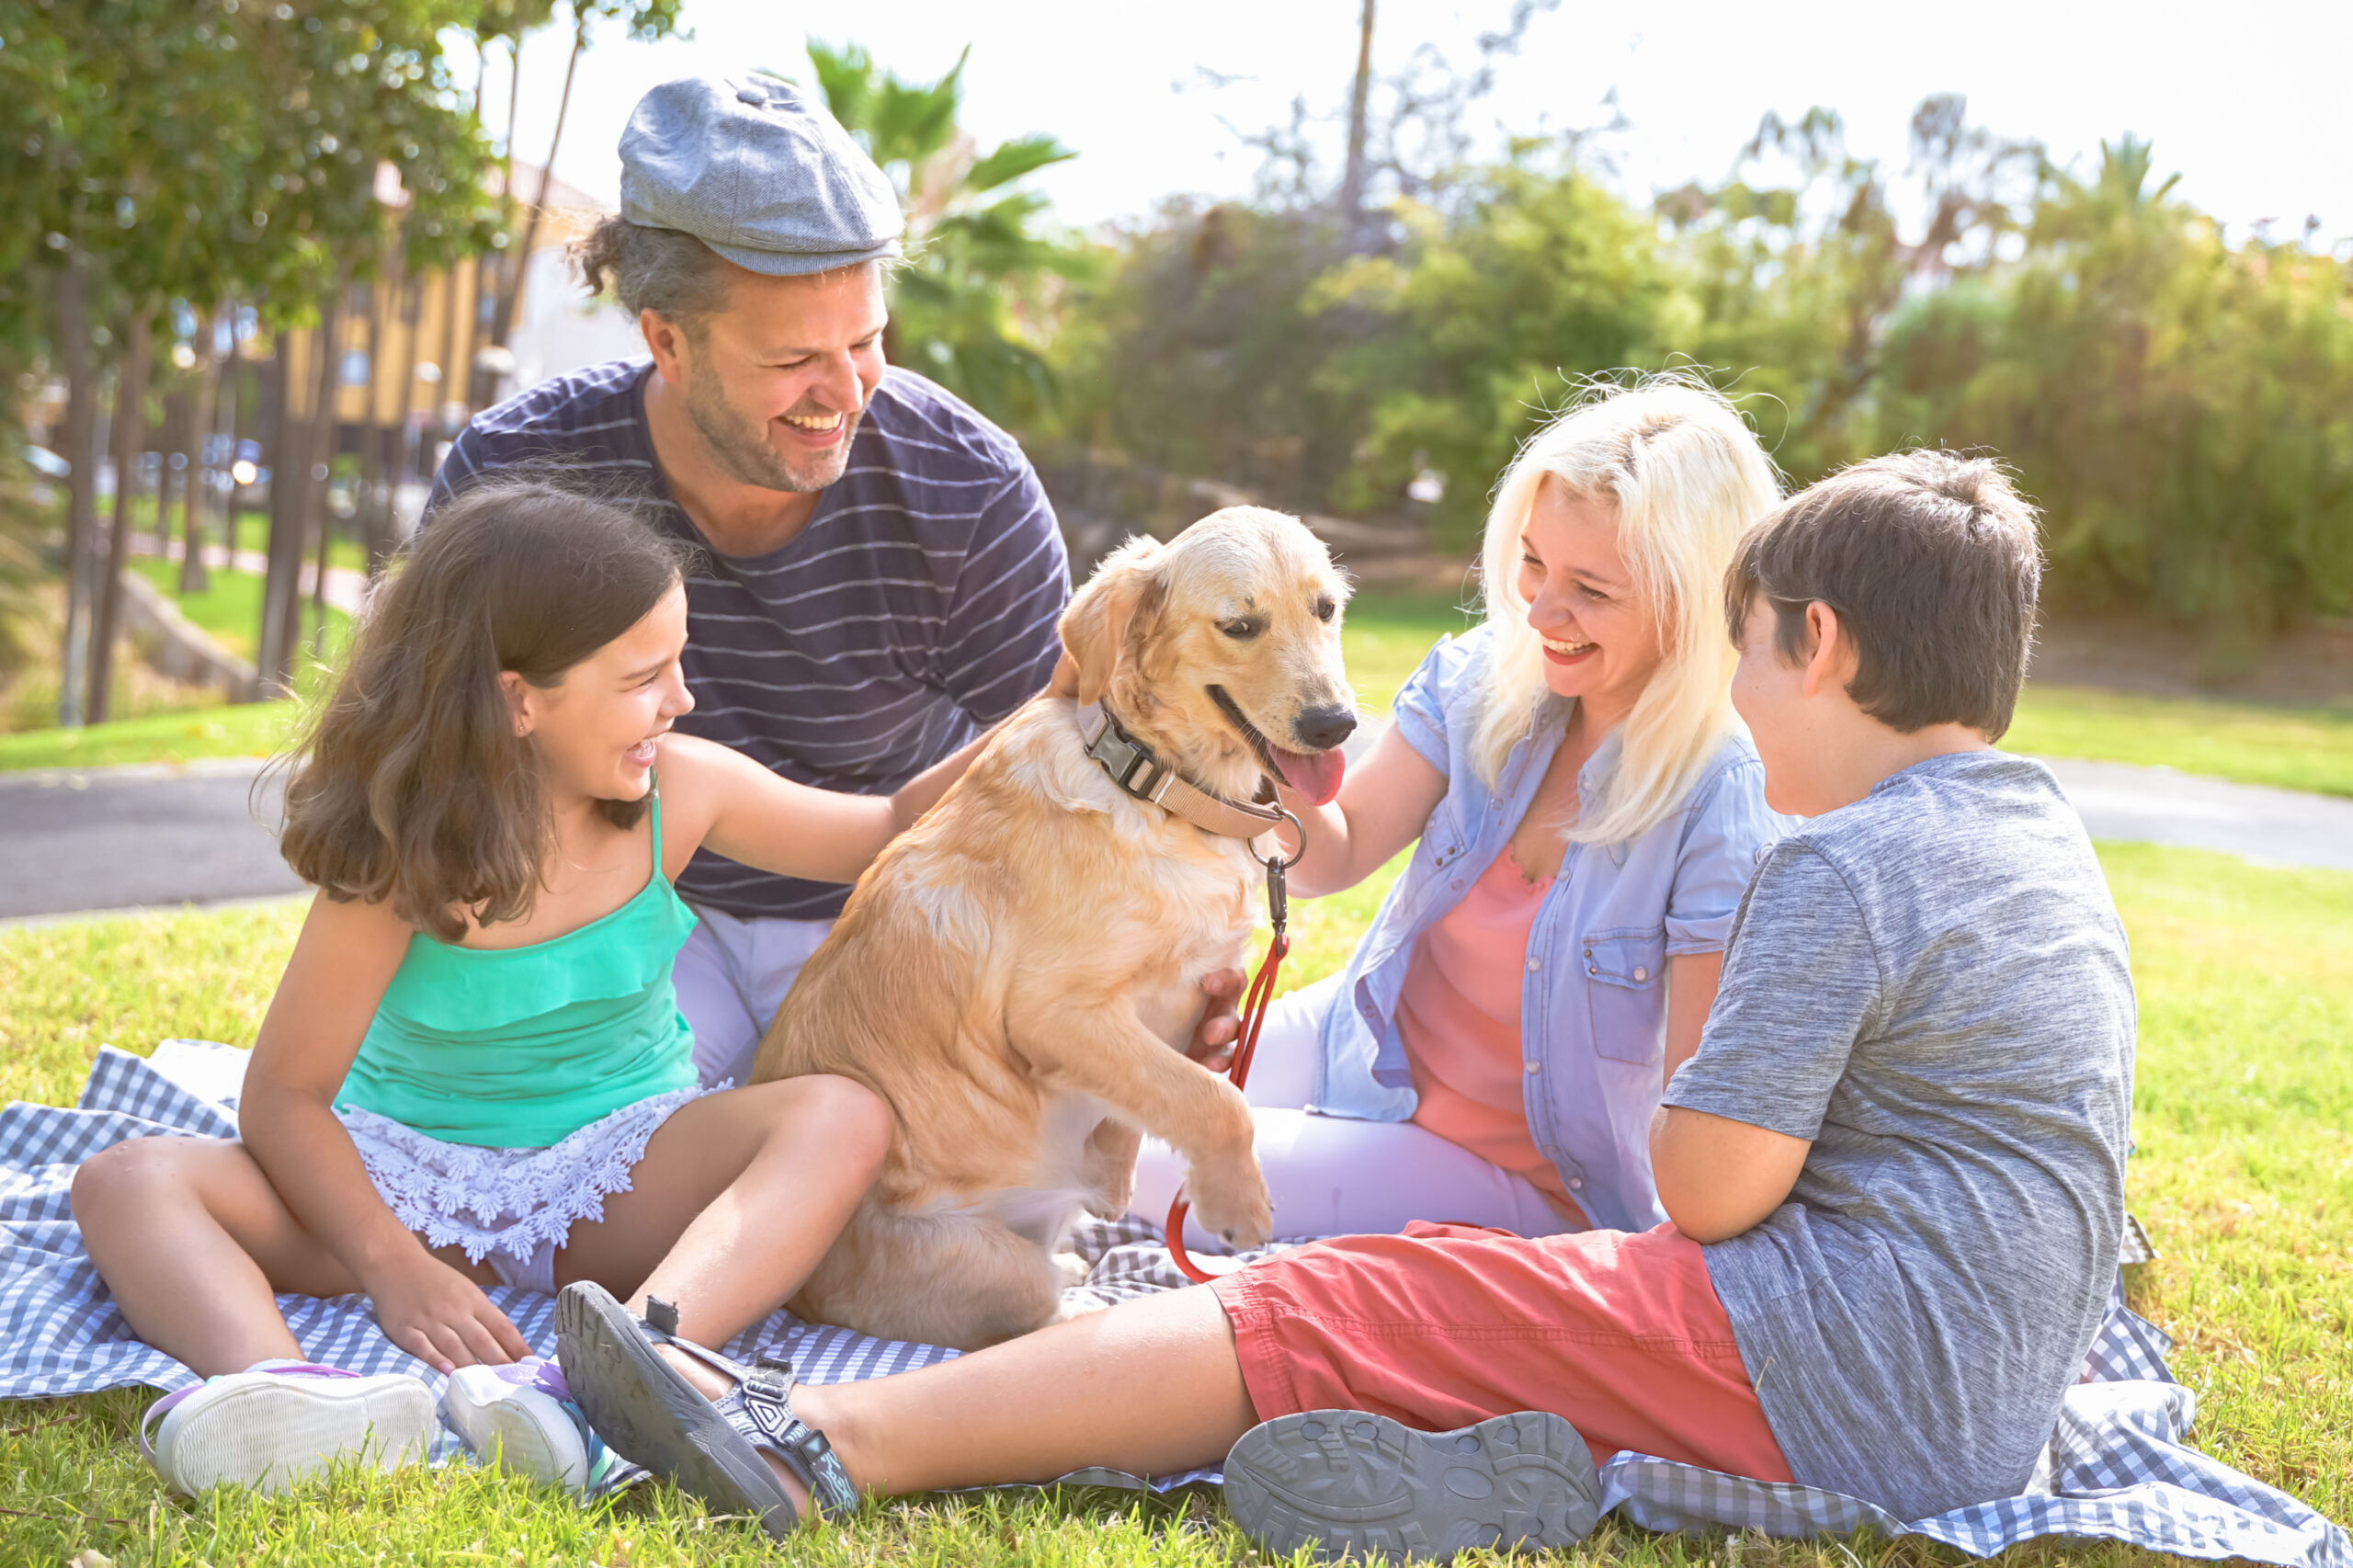 Family playing with the dog. beautiful day in the park. Happy family doing picnic in the nature outdoor. Focus the dog - Image